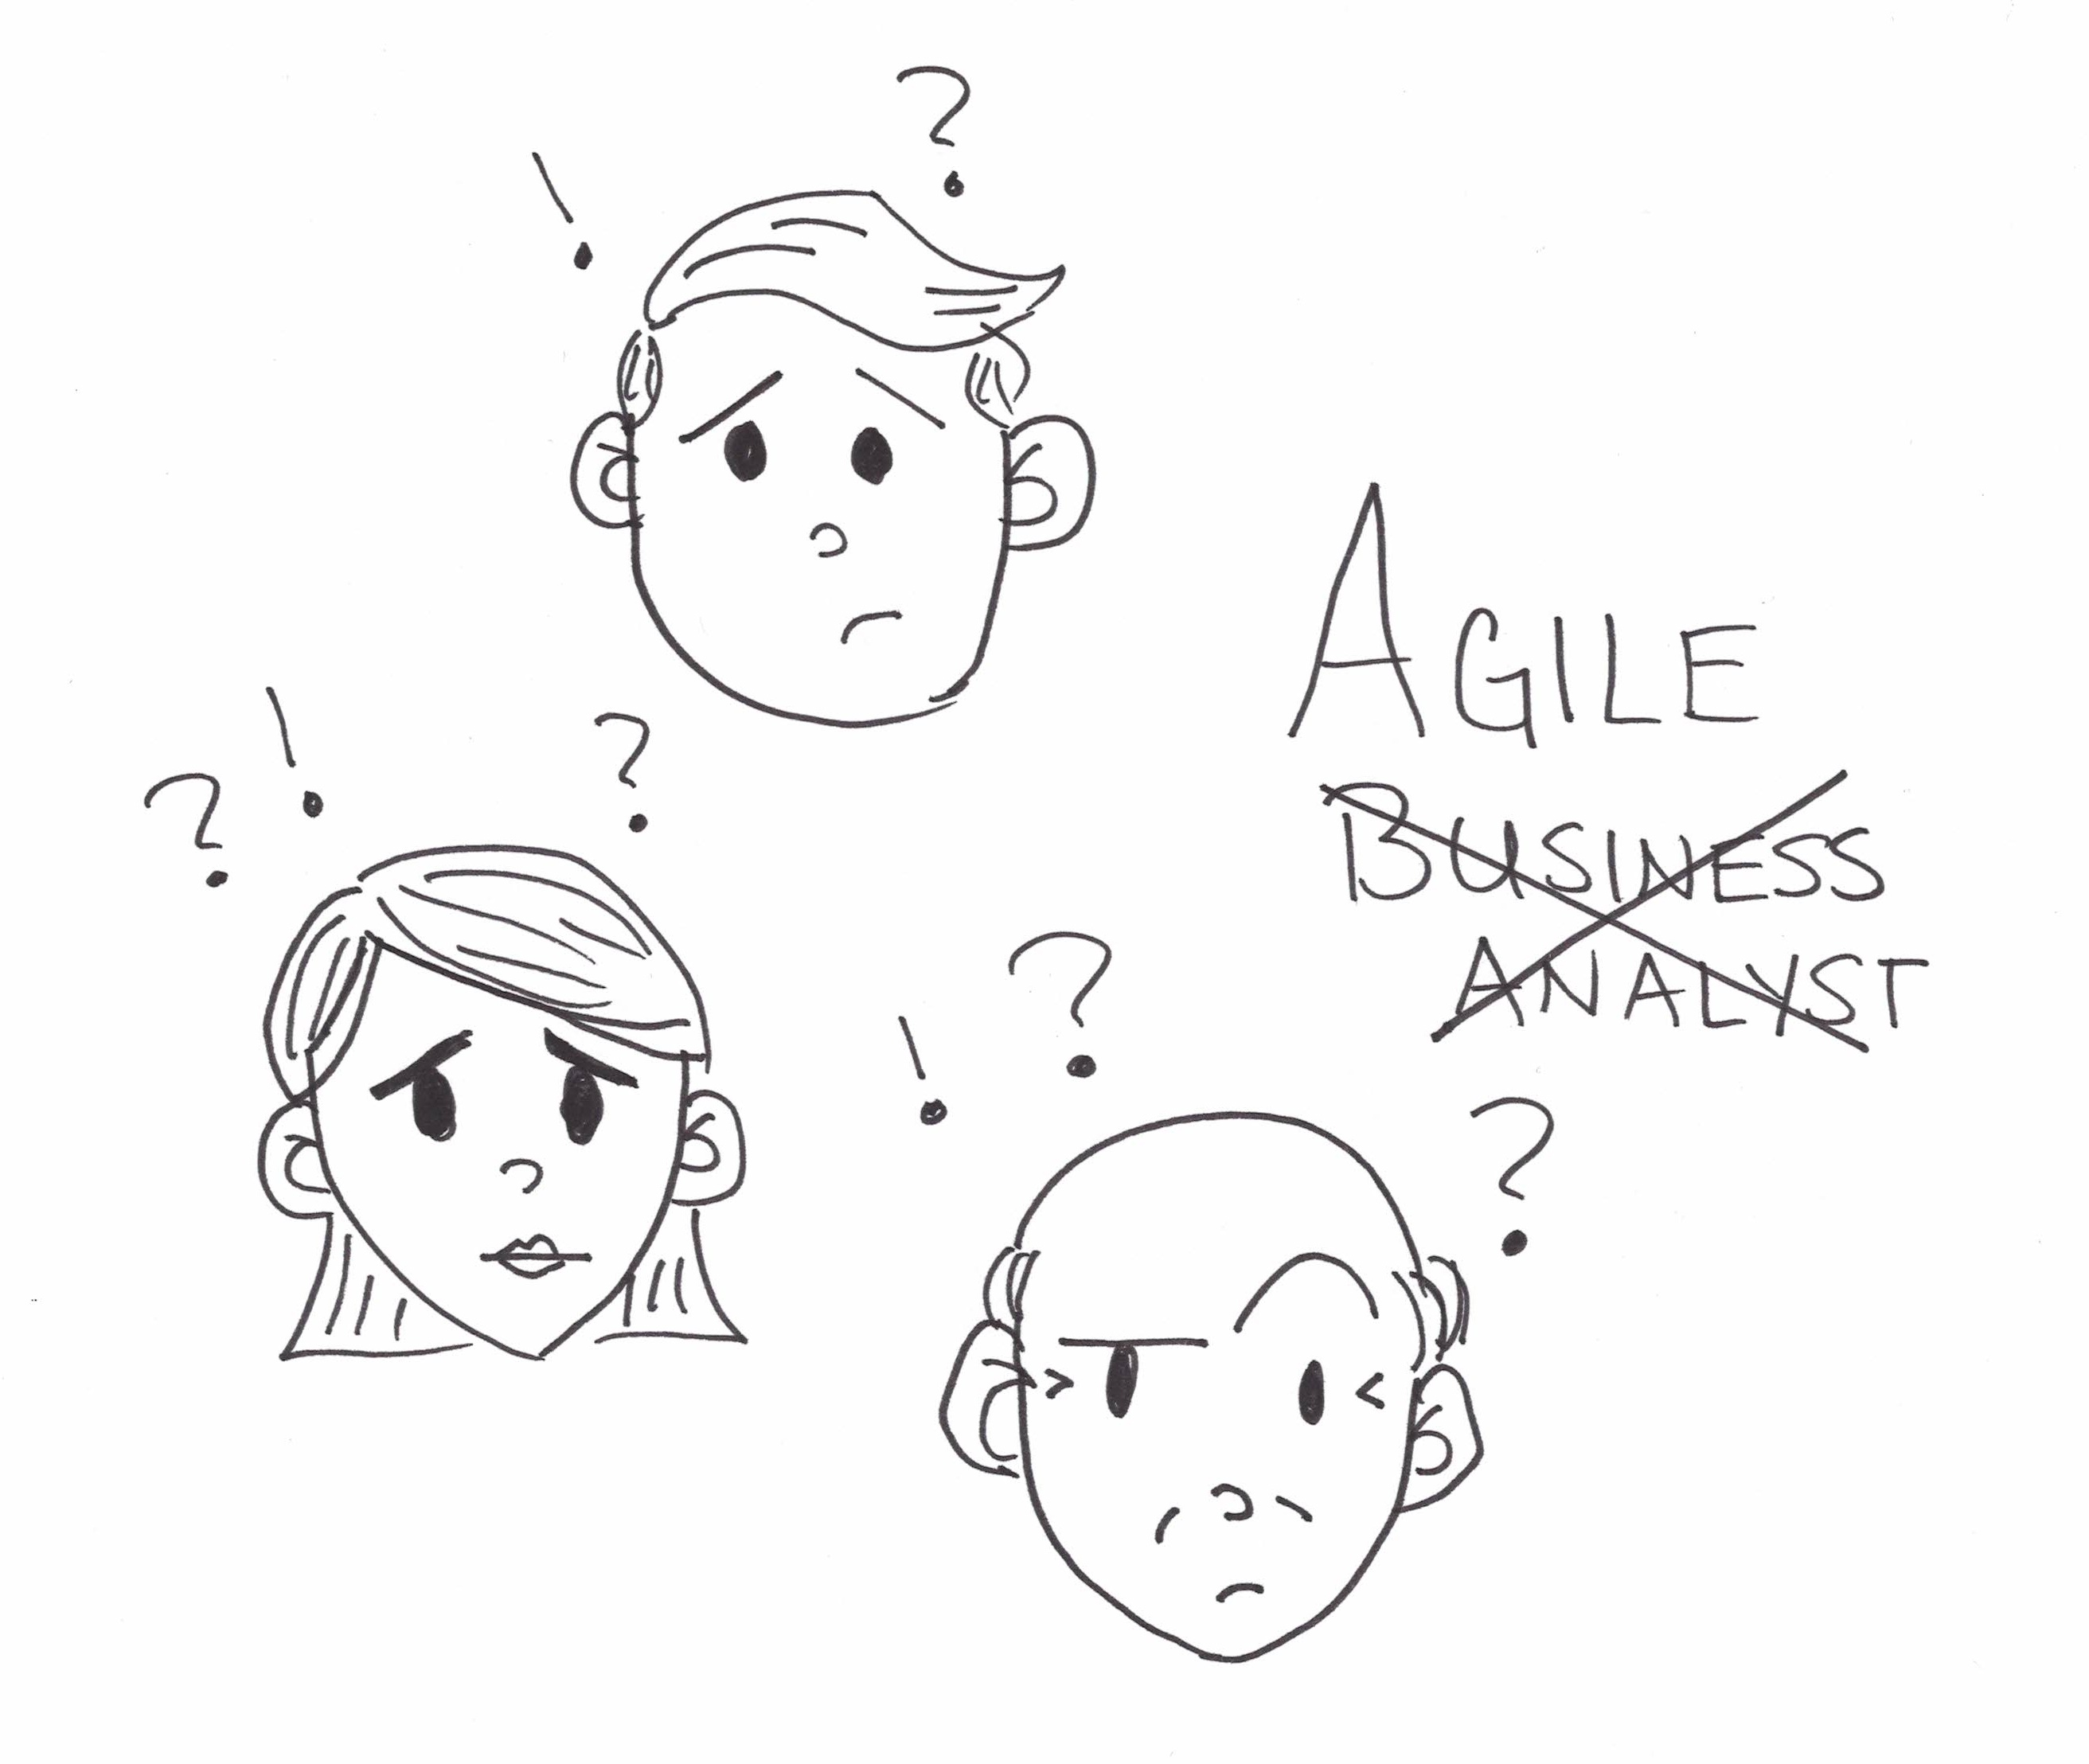 The Meta Business Analyst